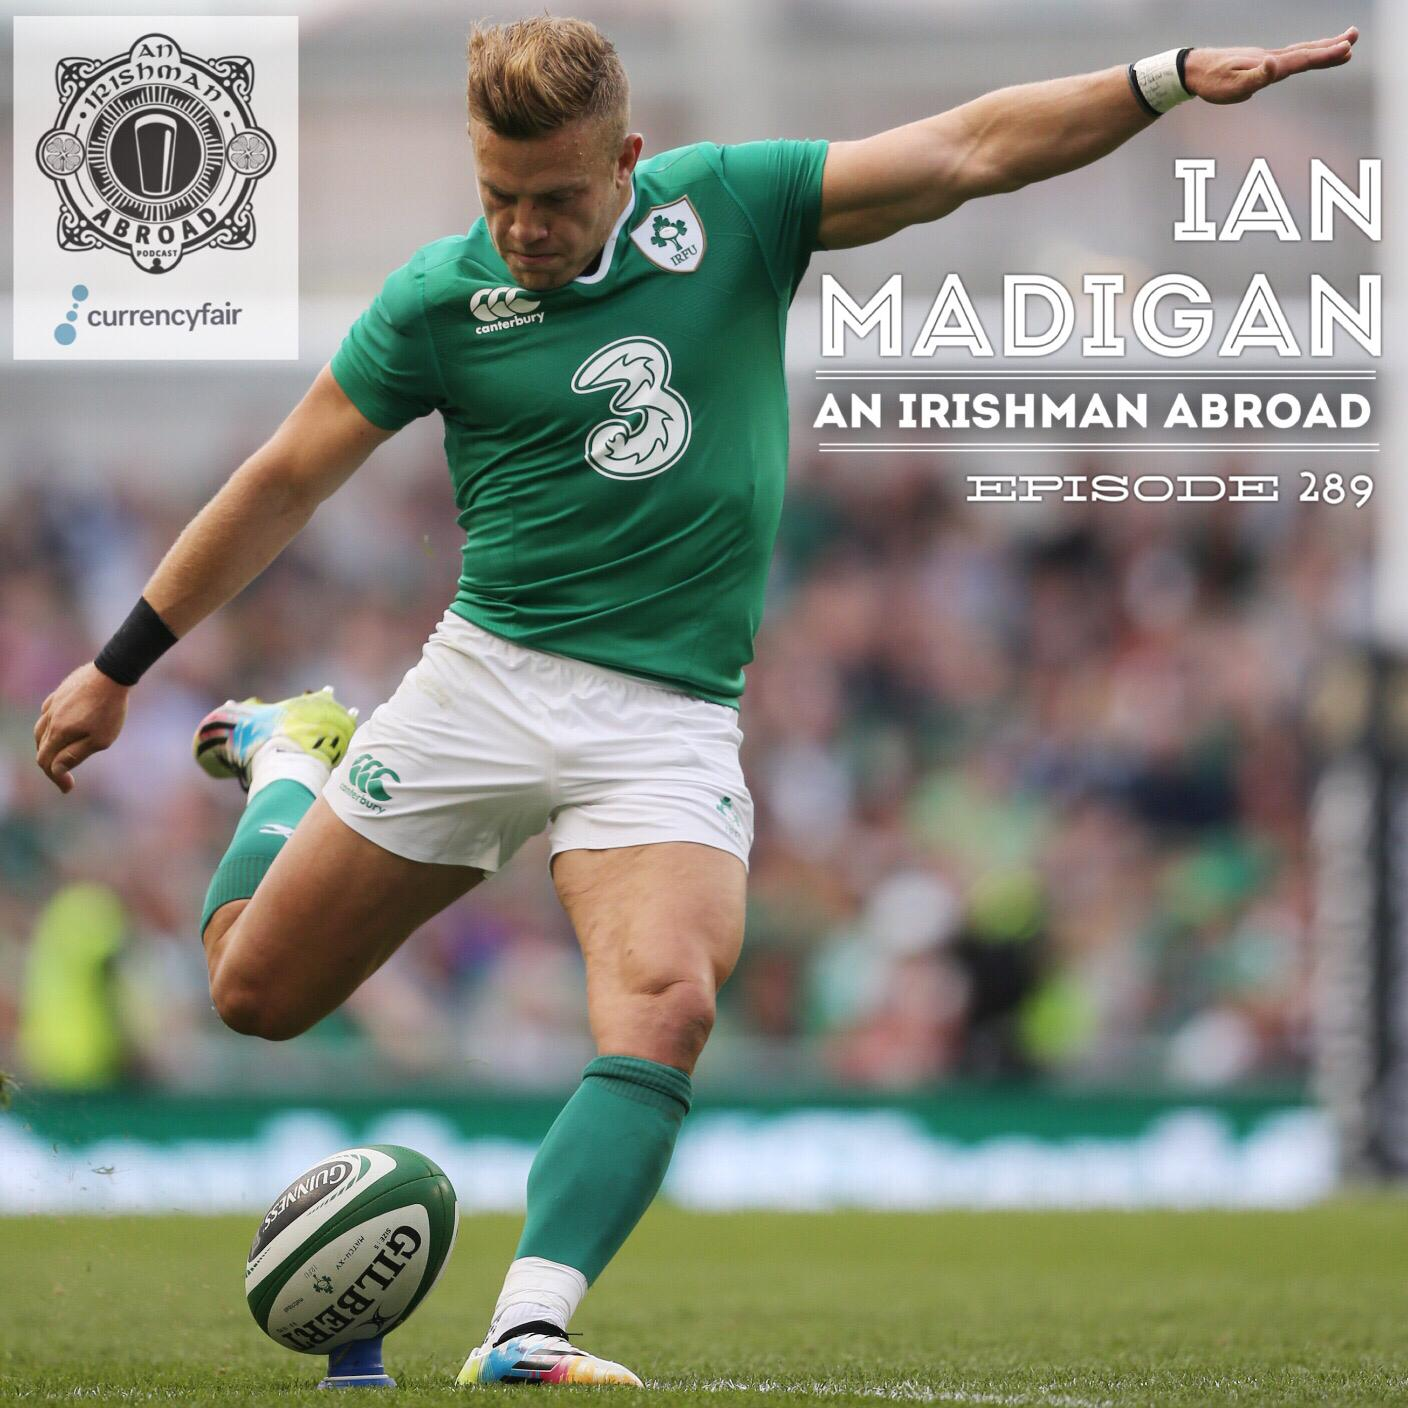 Ian Madigan: Episode 289